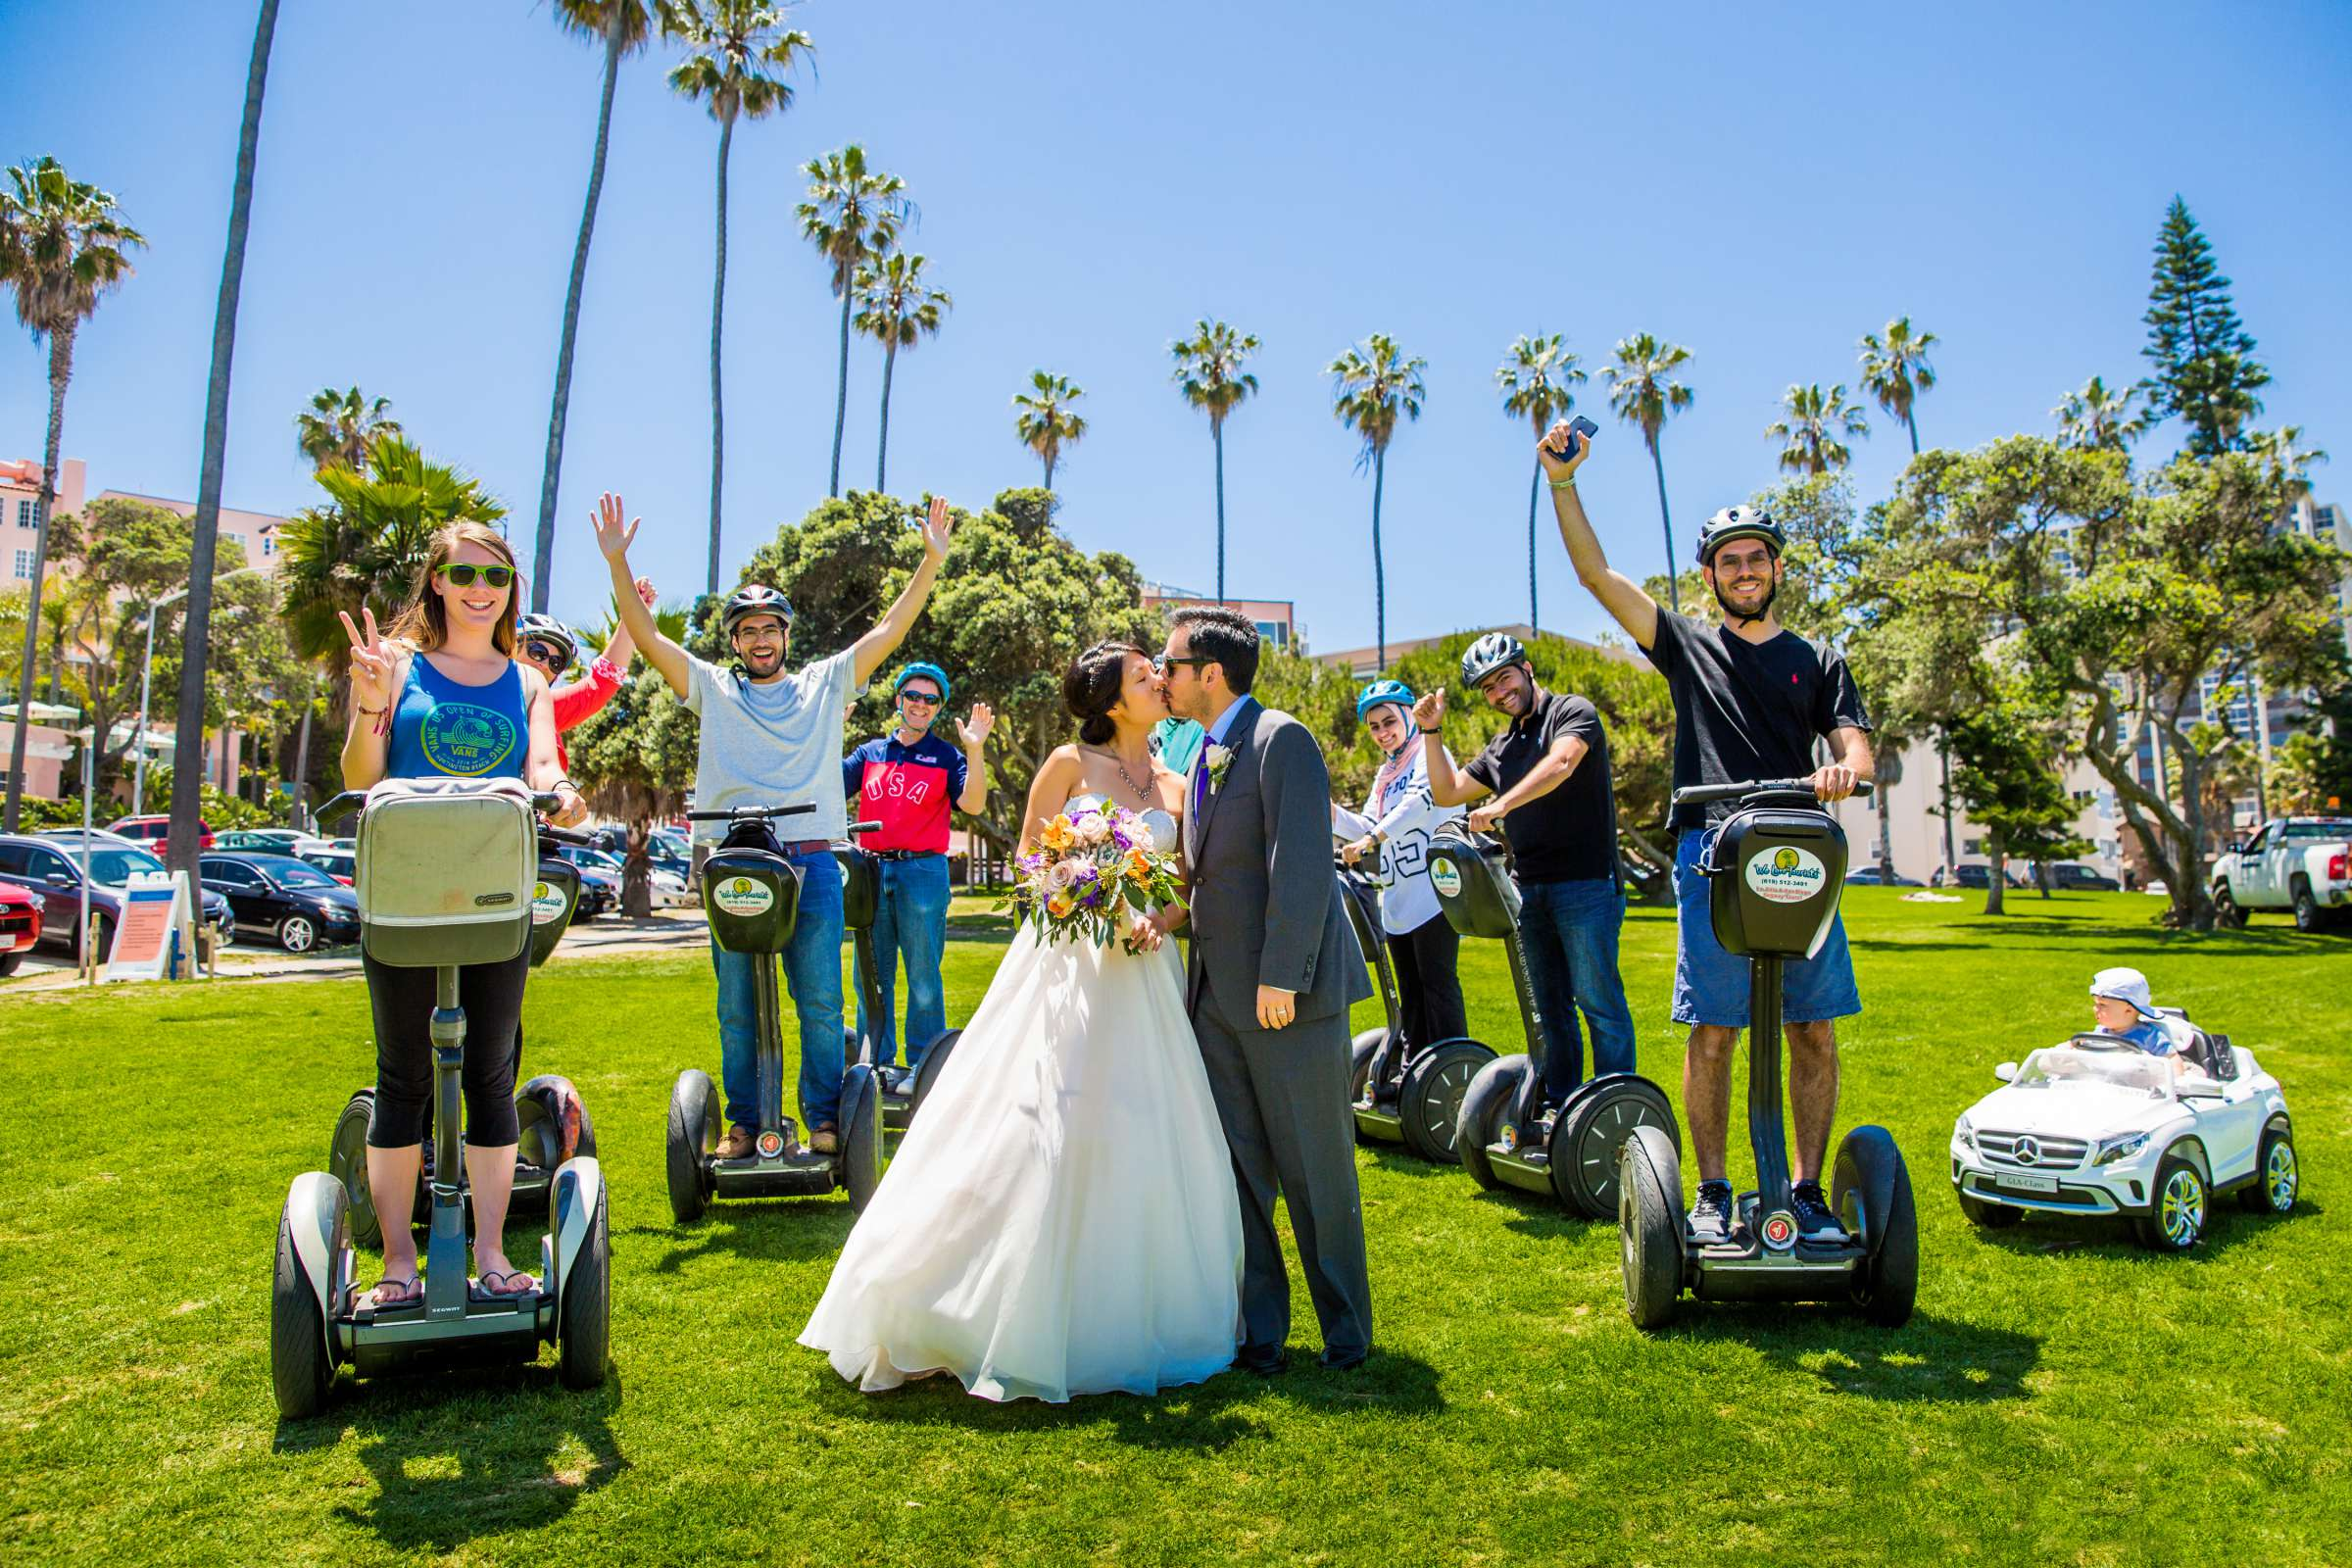 La Valencia Wedding, Karen and Anthony Wedding Photo #369710 by True Photography